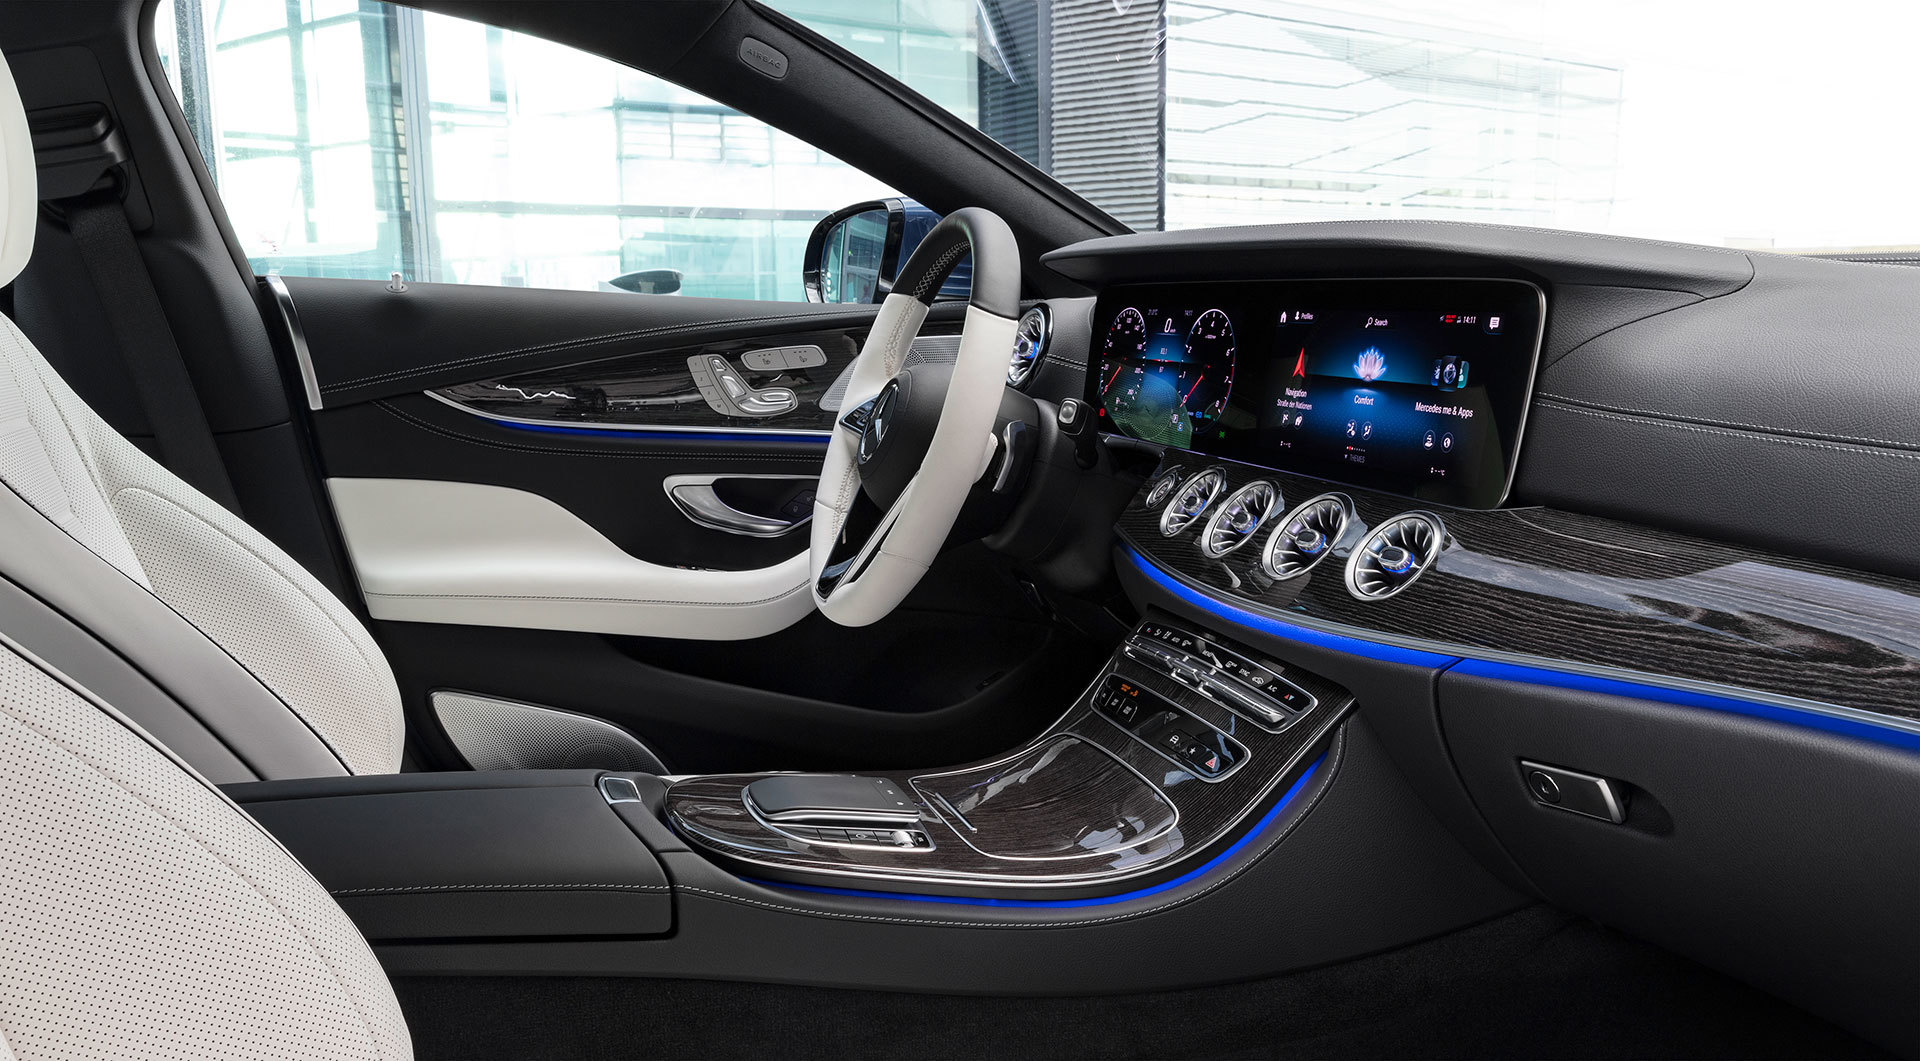 Mercedes Cls Coupe 2021 Interior Amg Line 034